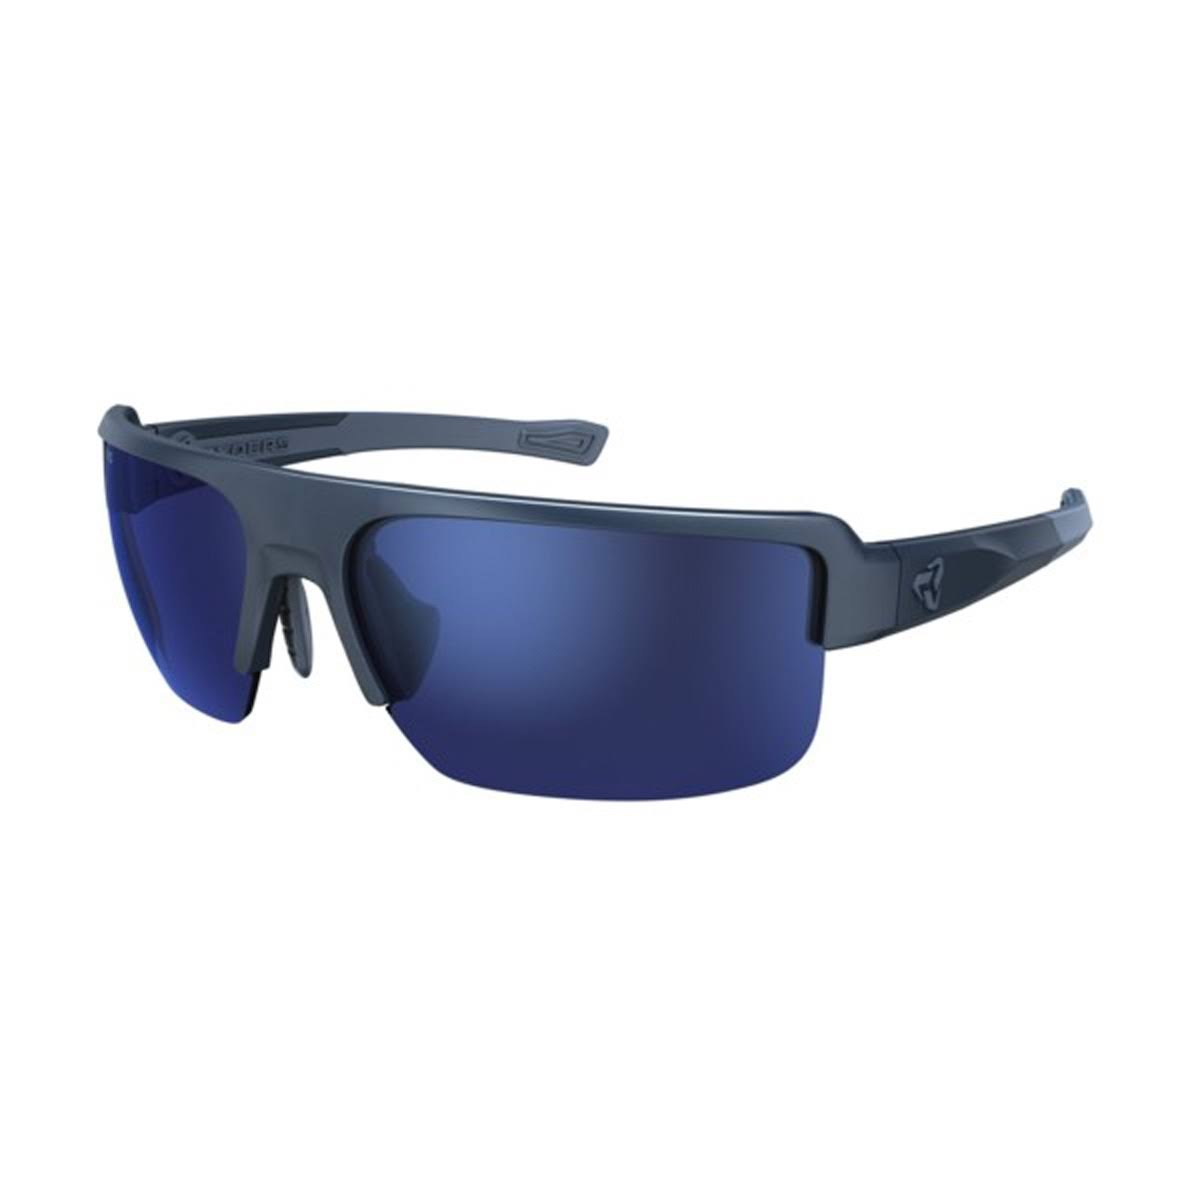 Ryders Eyewear Seventh Sunglasses, Blue